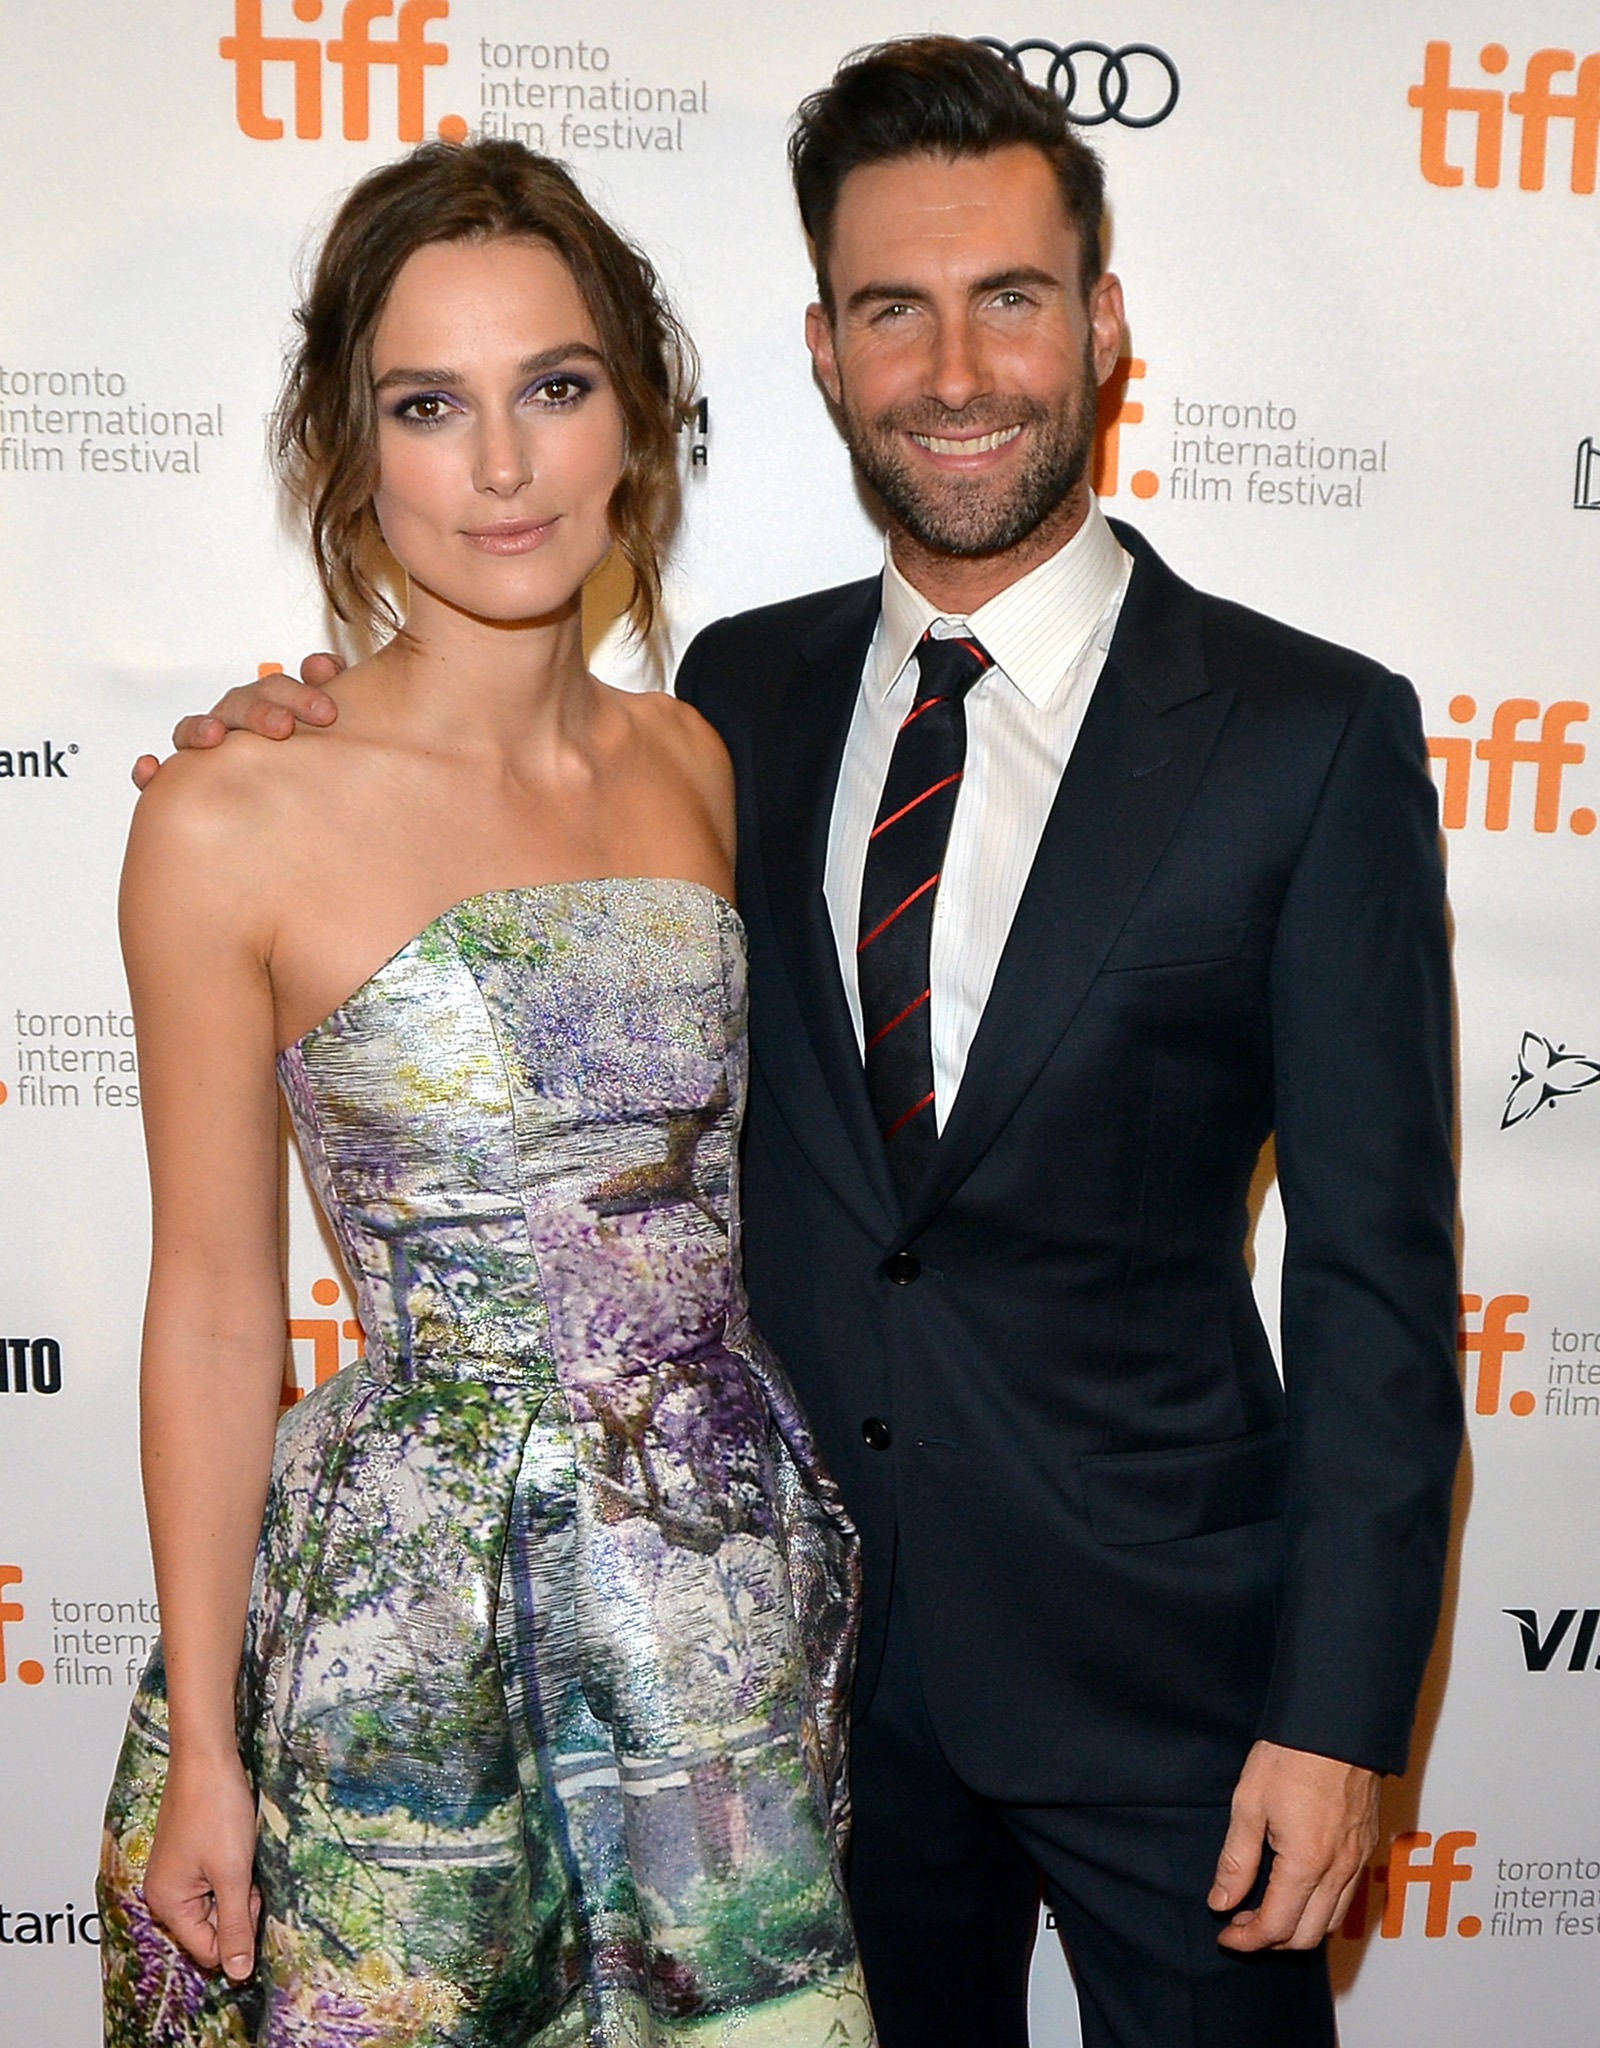 Keira Knightley and Adam Levine (George Pimentel/WireImage)